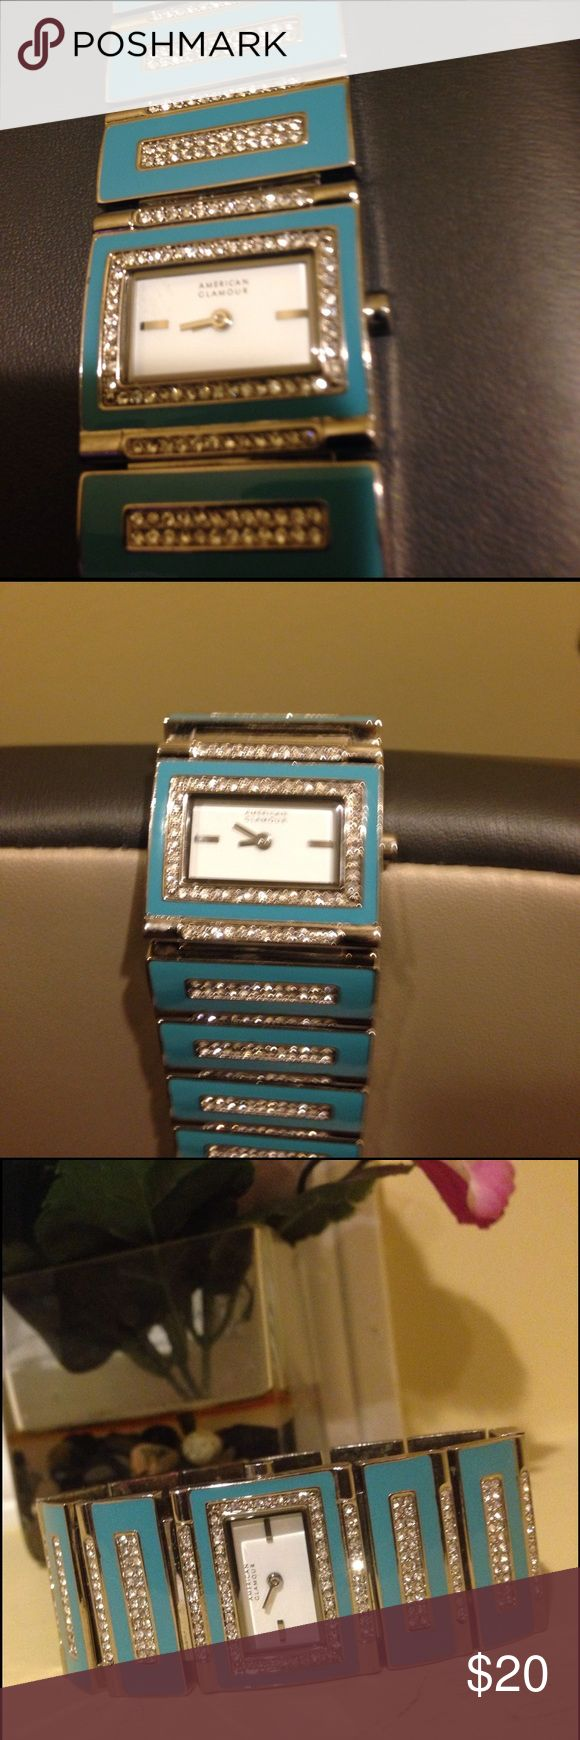 American Glamour watch by Badgley Mischka Gorgeous turquoise and stainless steel watch with white topaz accents on the linked band. New battery. Secure locking system and removable links if needed. Priced to sell as we are moving. I have another in salmon if interested Badgley Mischka Jewelry